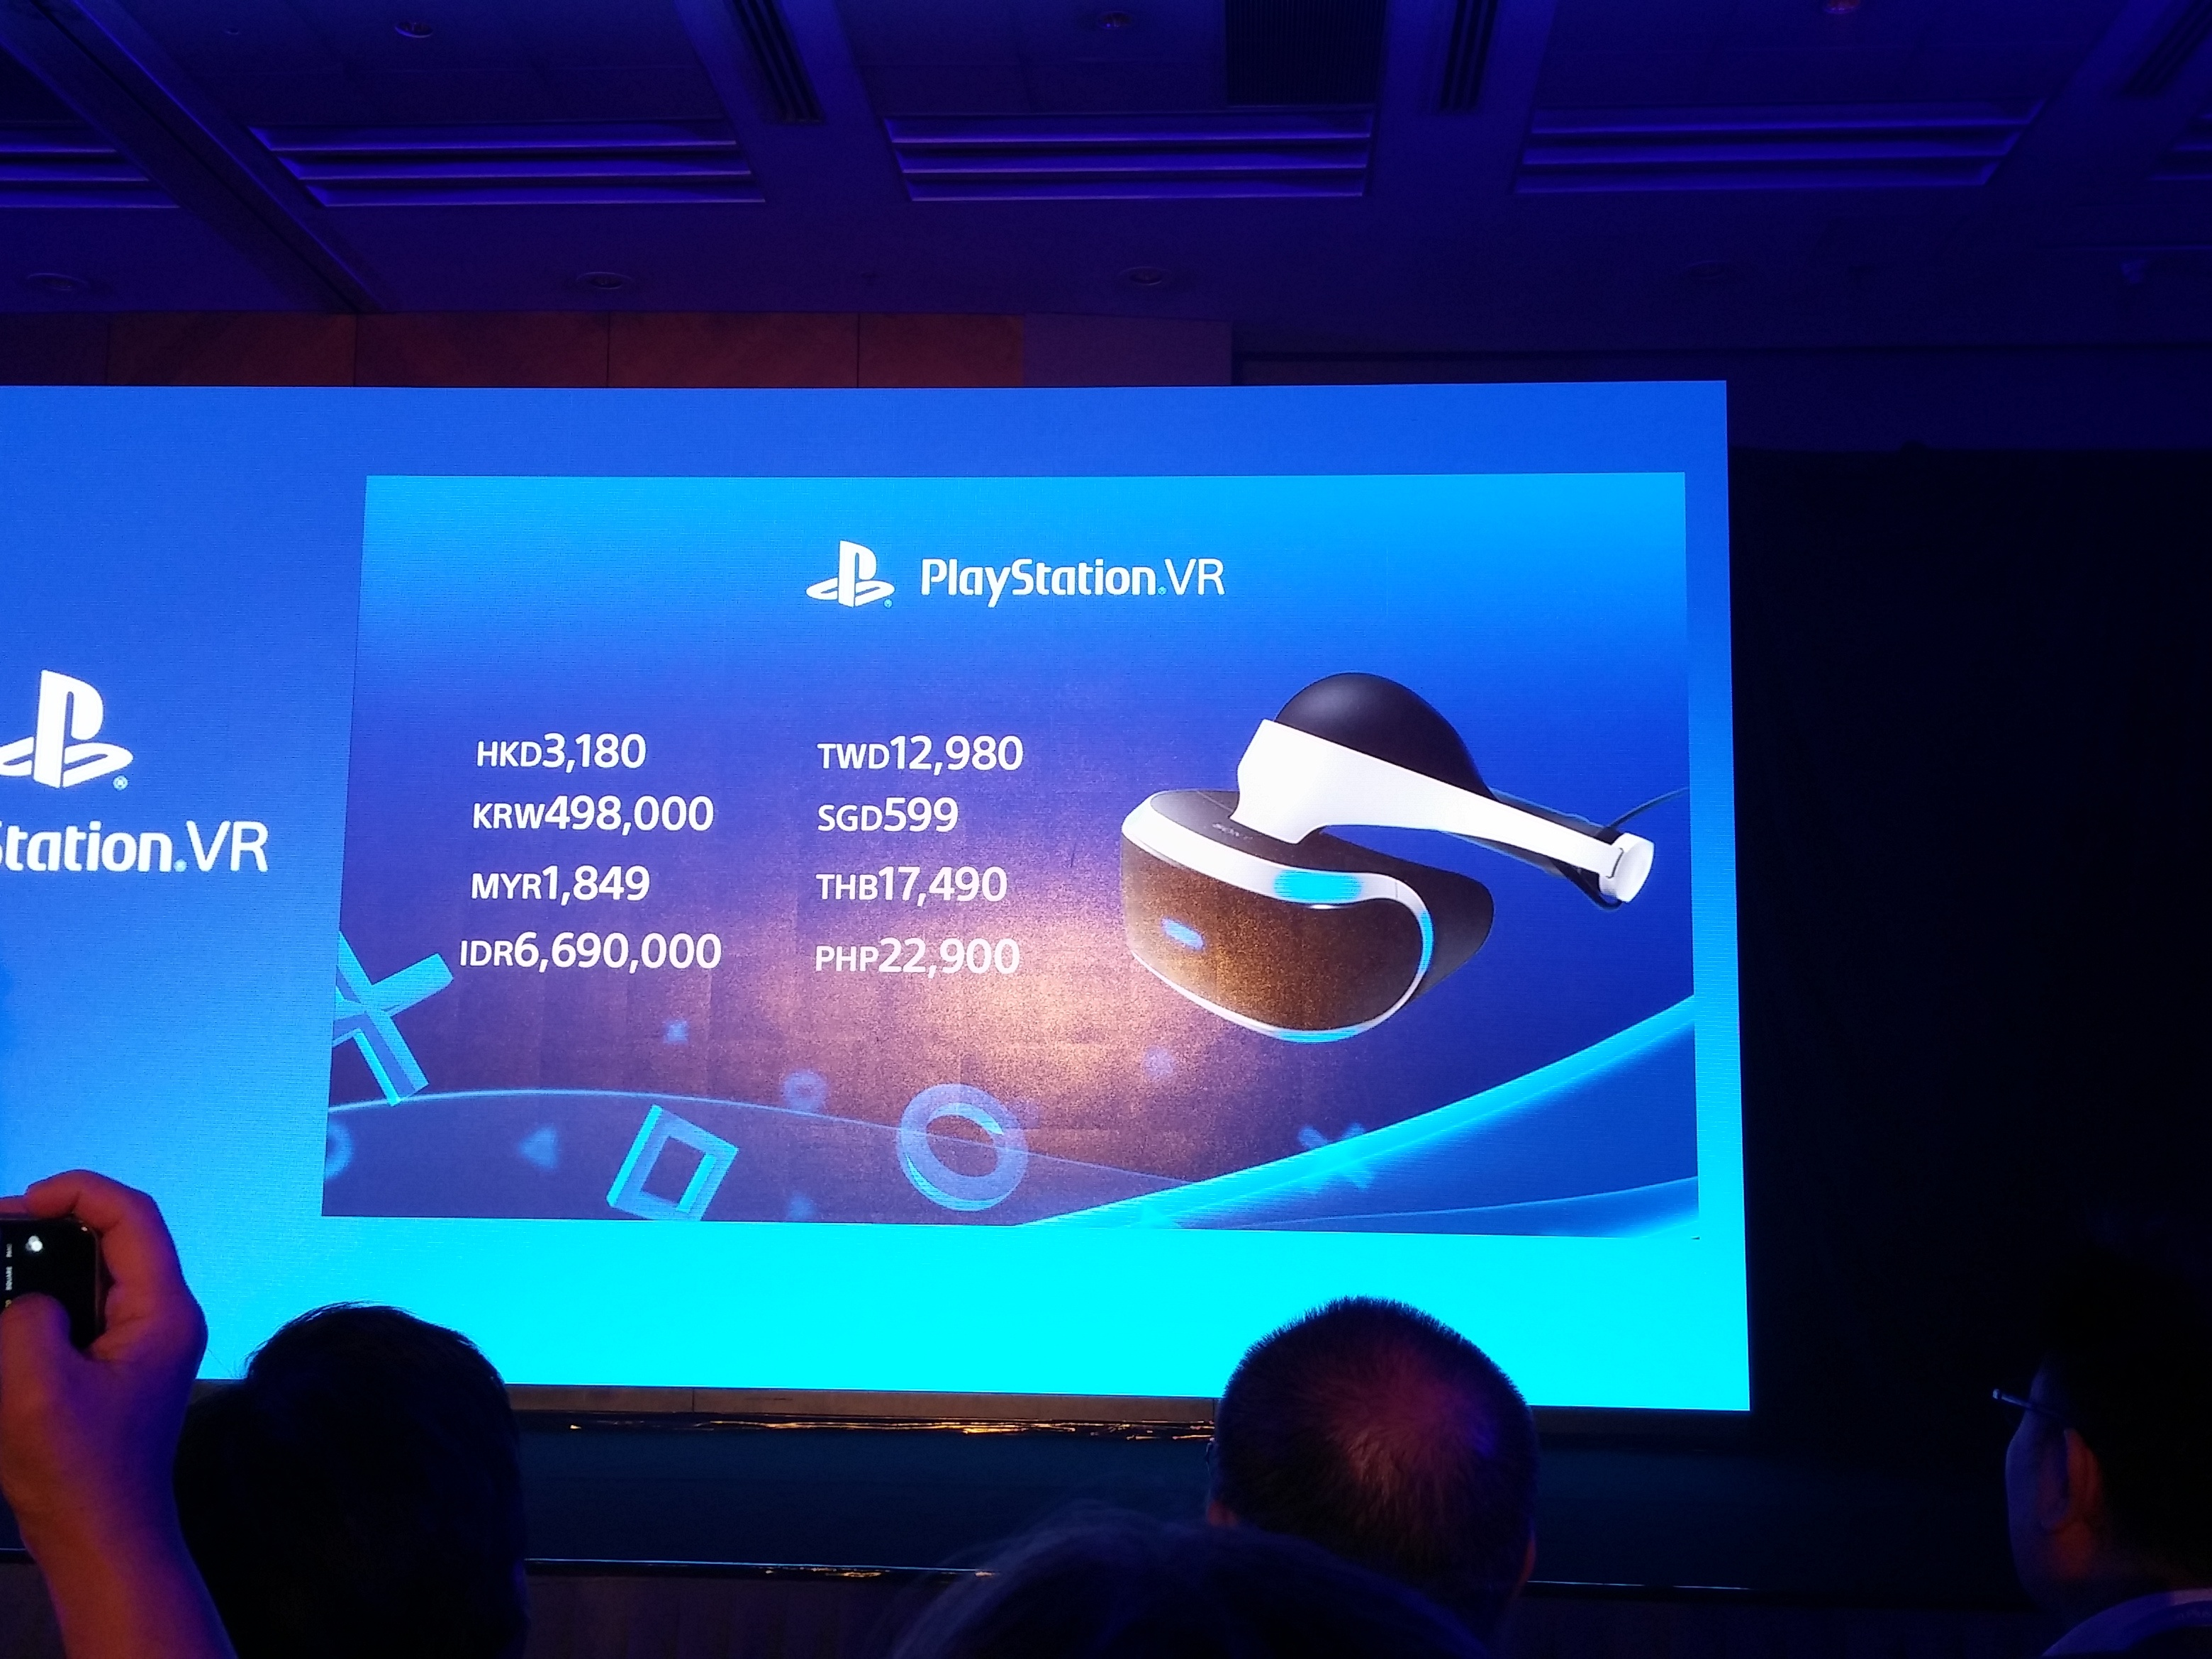 Pricing for the PlayStation VR unit